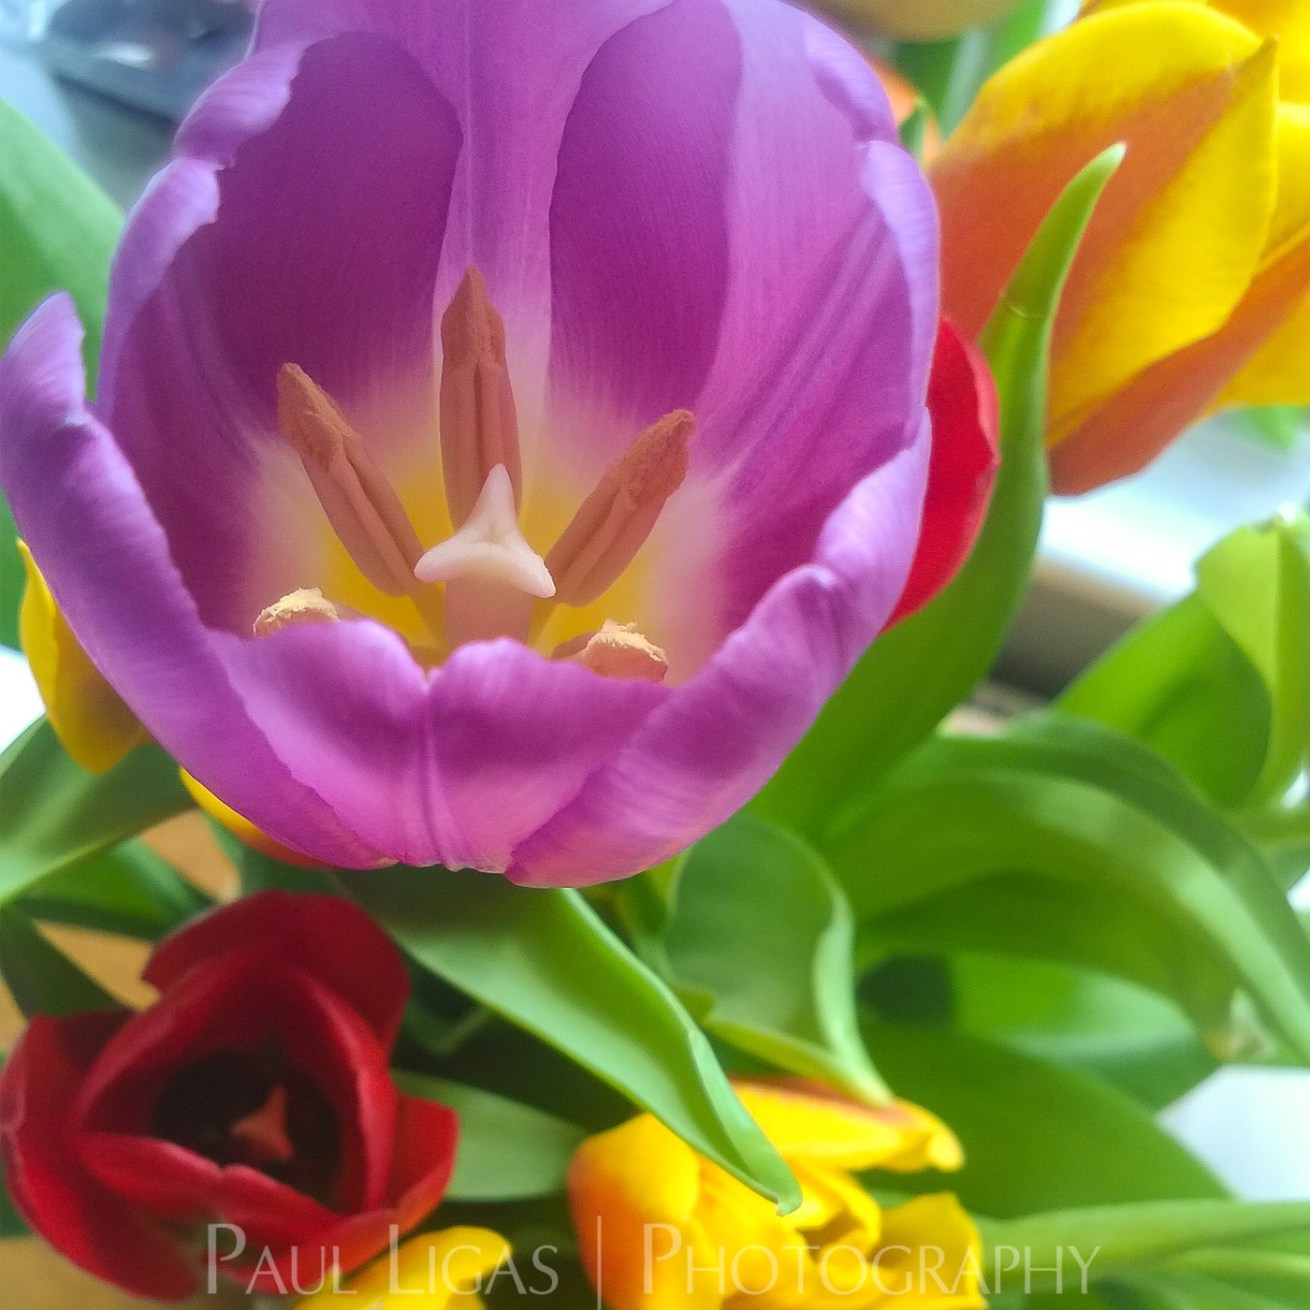 Tulips on the Table flowers nature photographer photography herefordshire 003